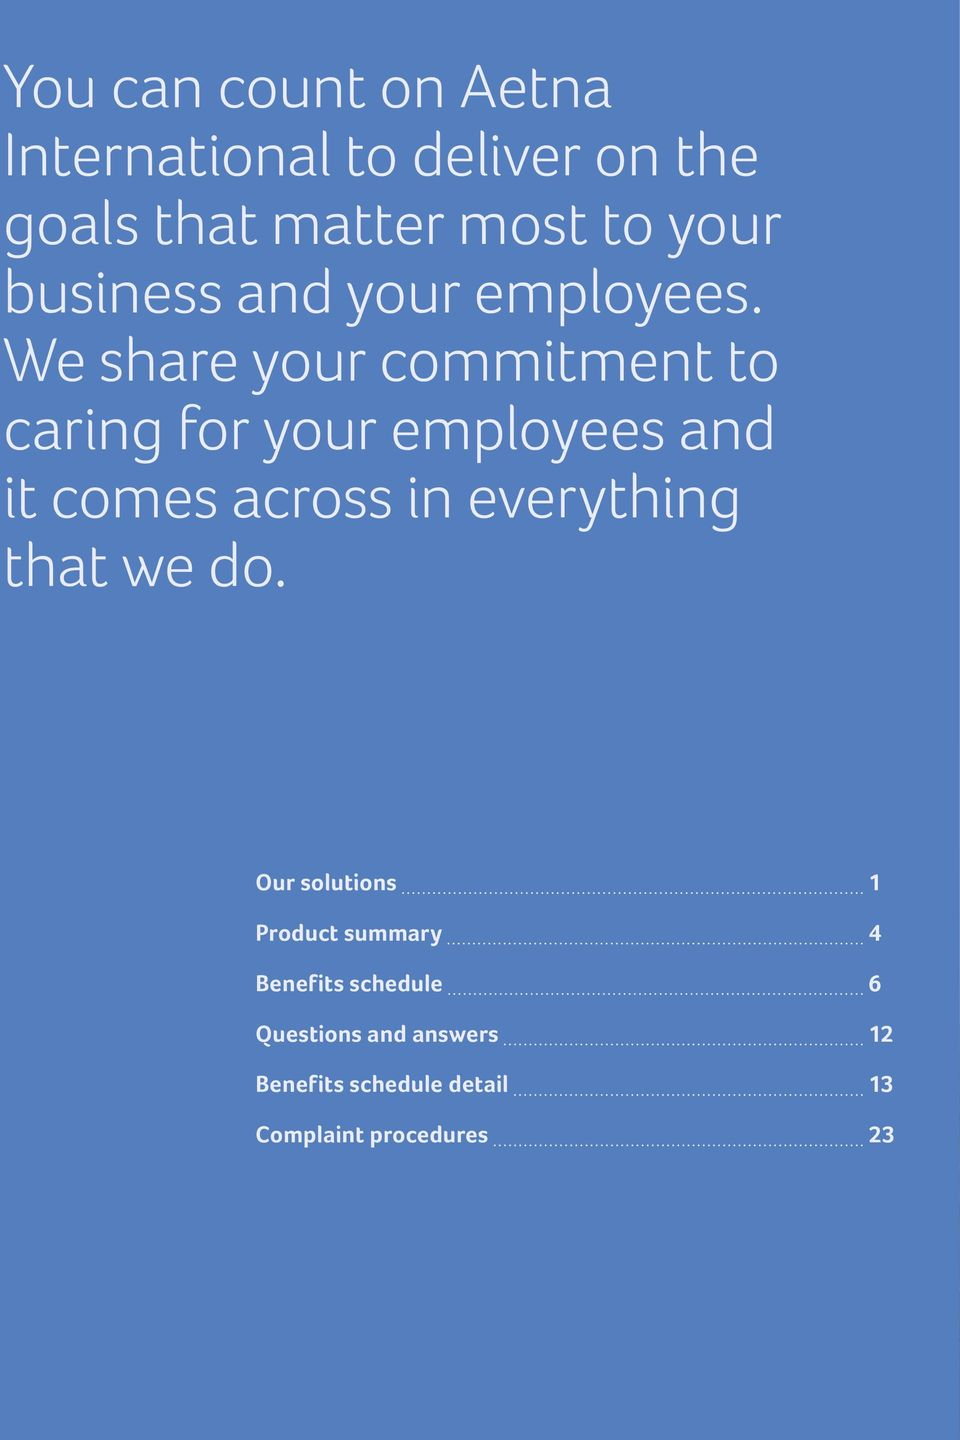 We share your commitment to caring for your employees and it comes across in